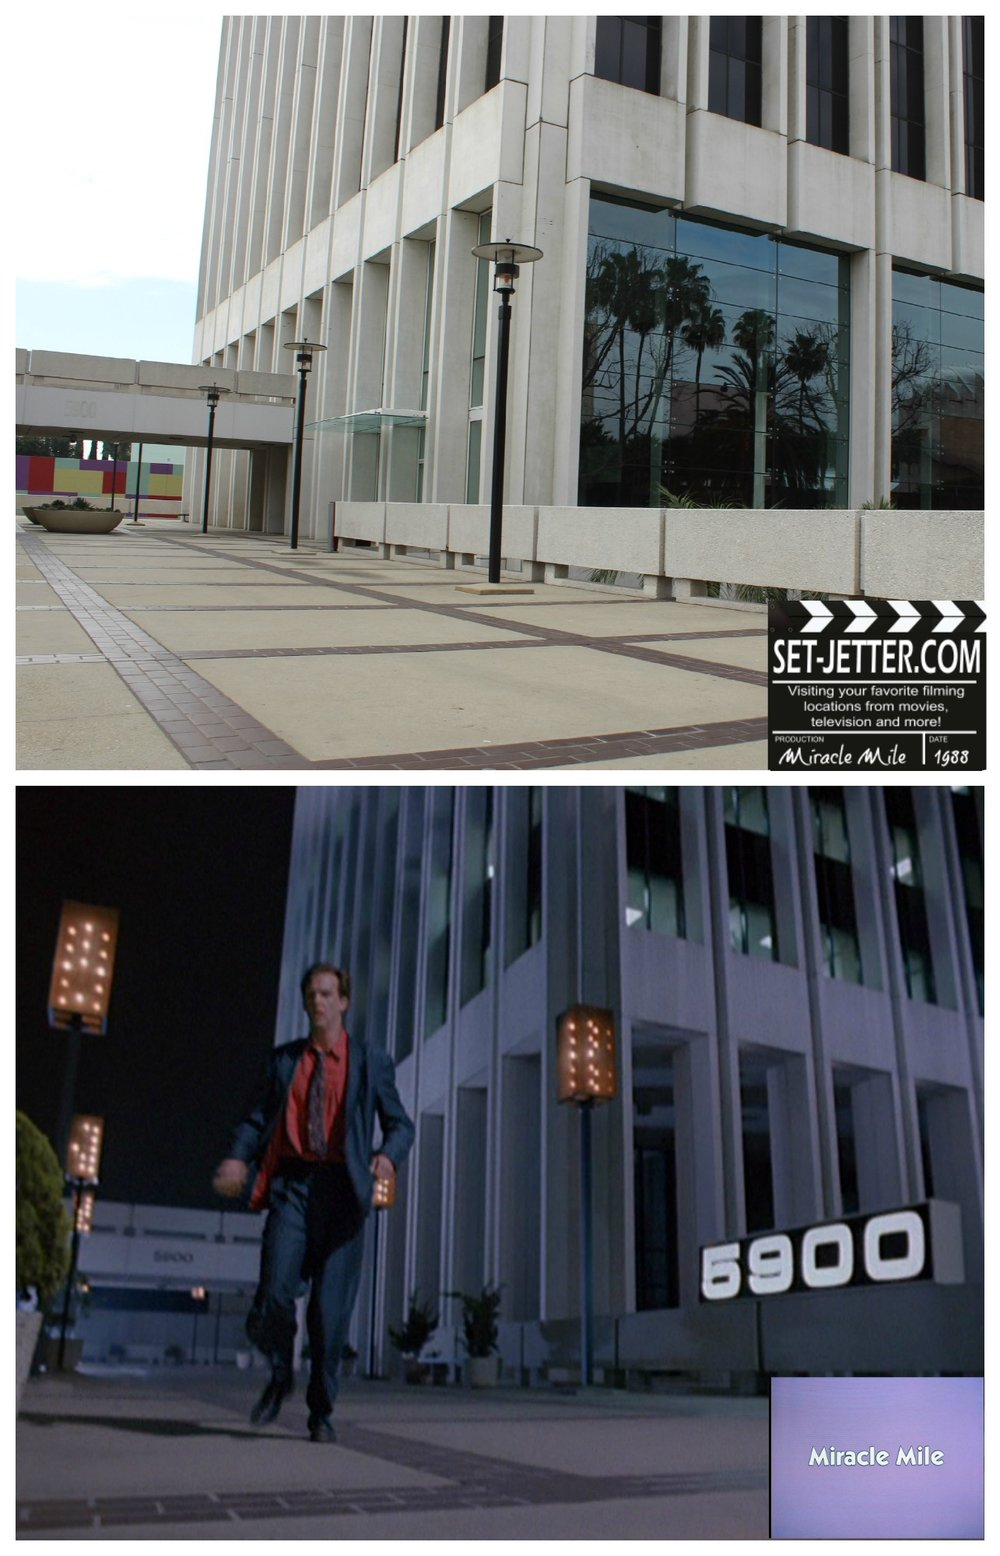 Miracle Mile comparison 32.jpg